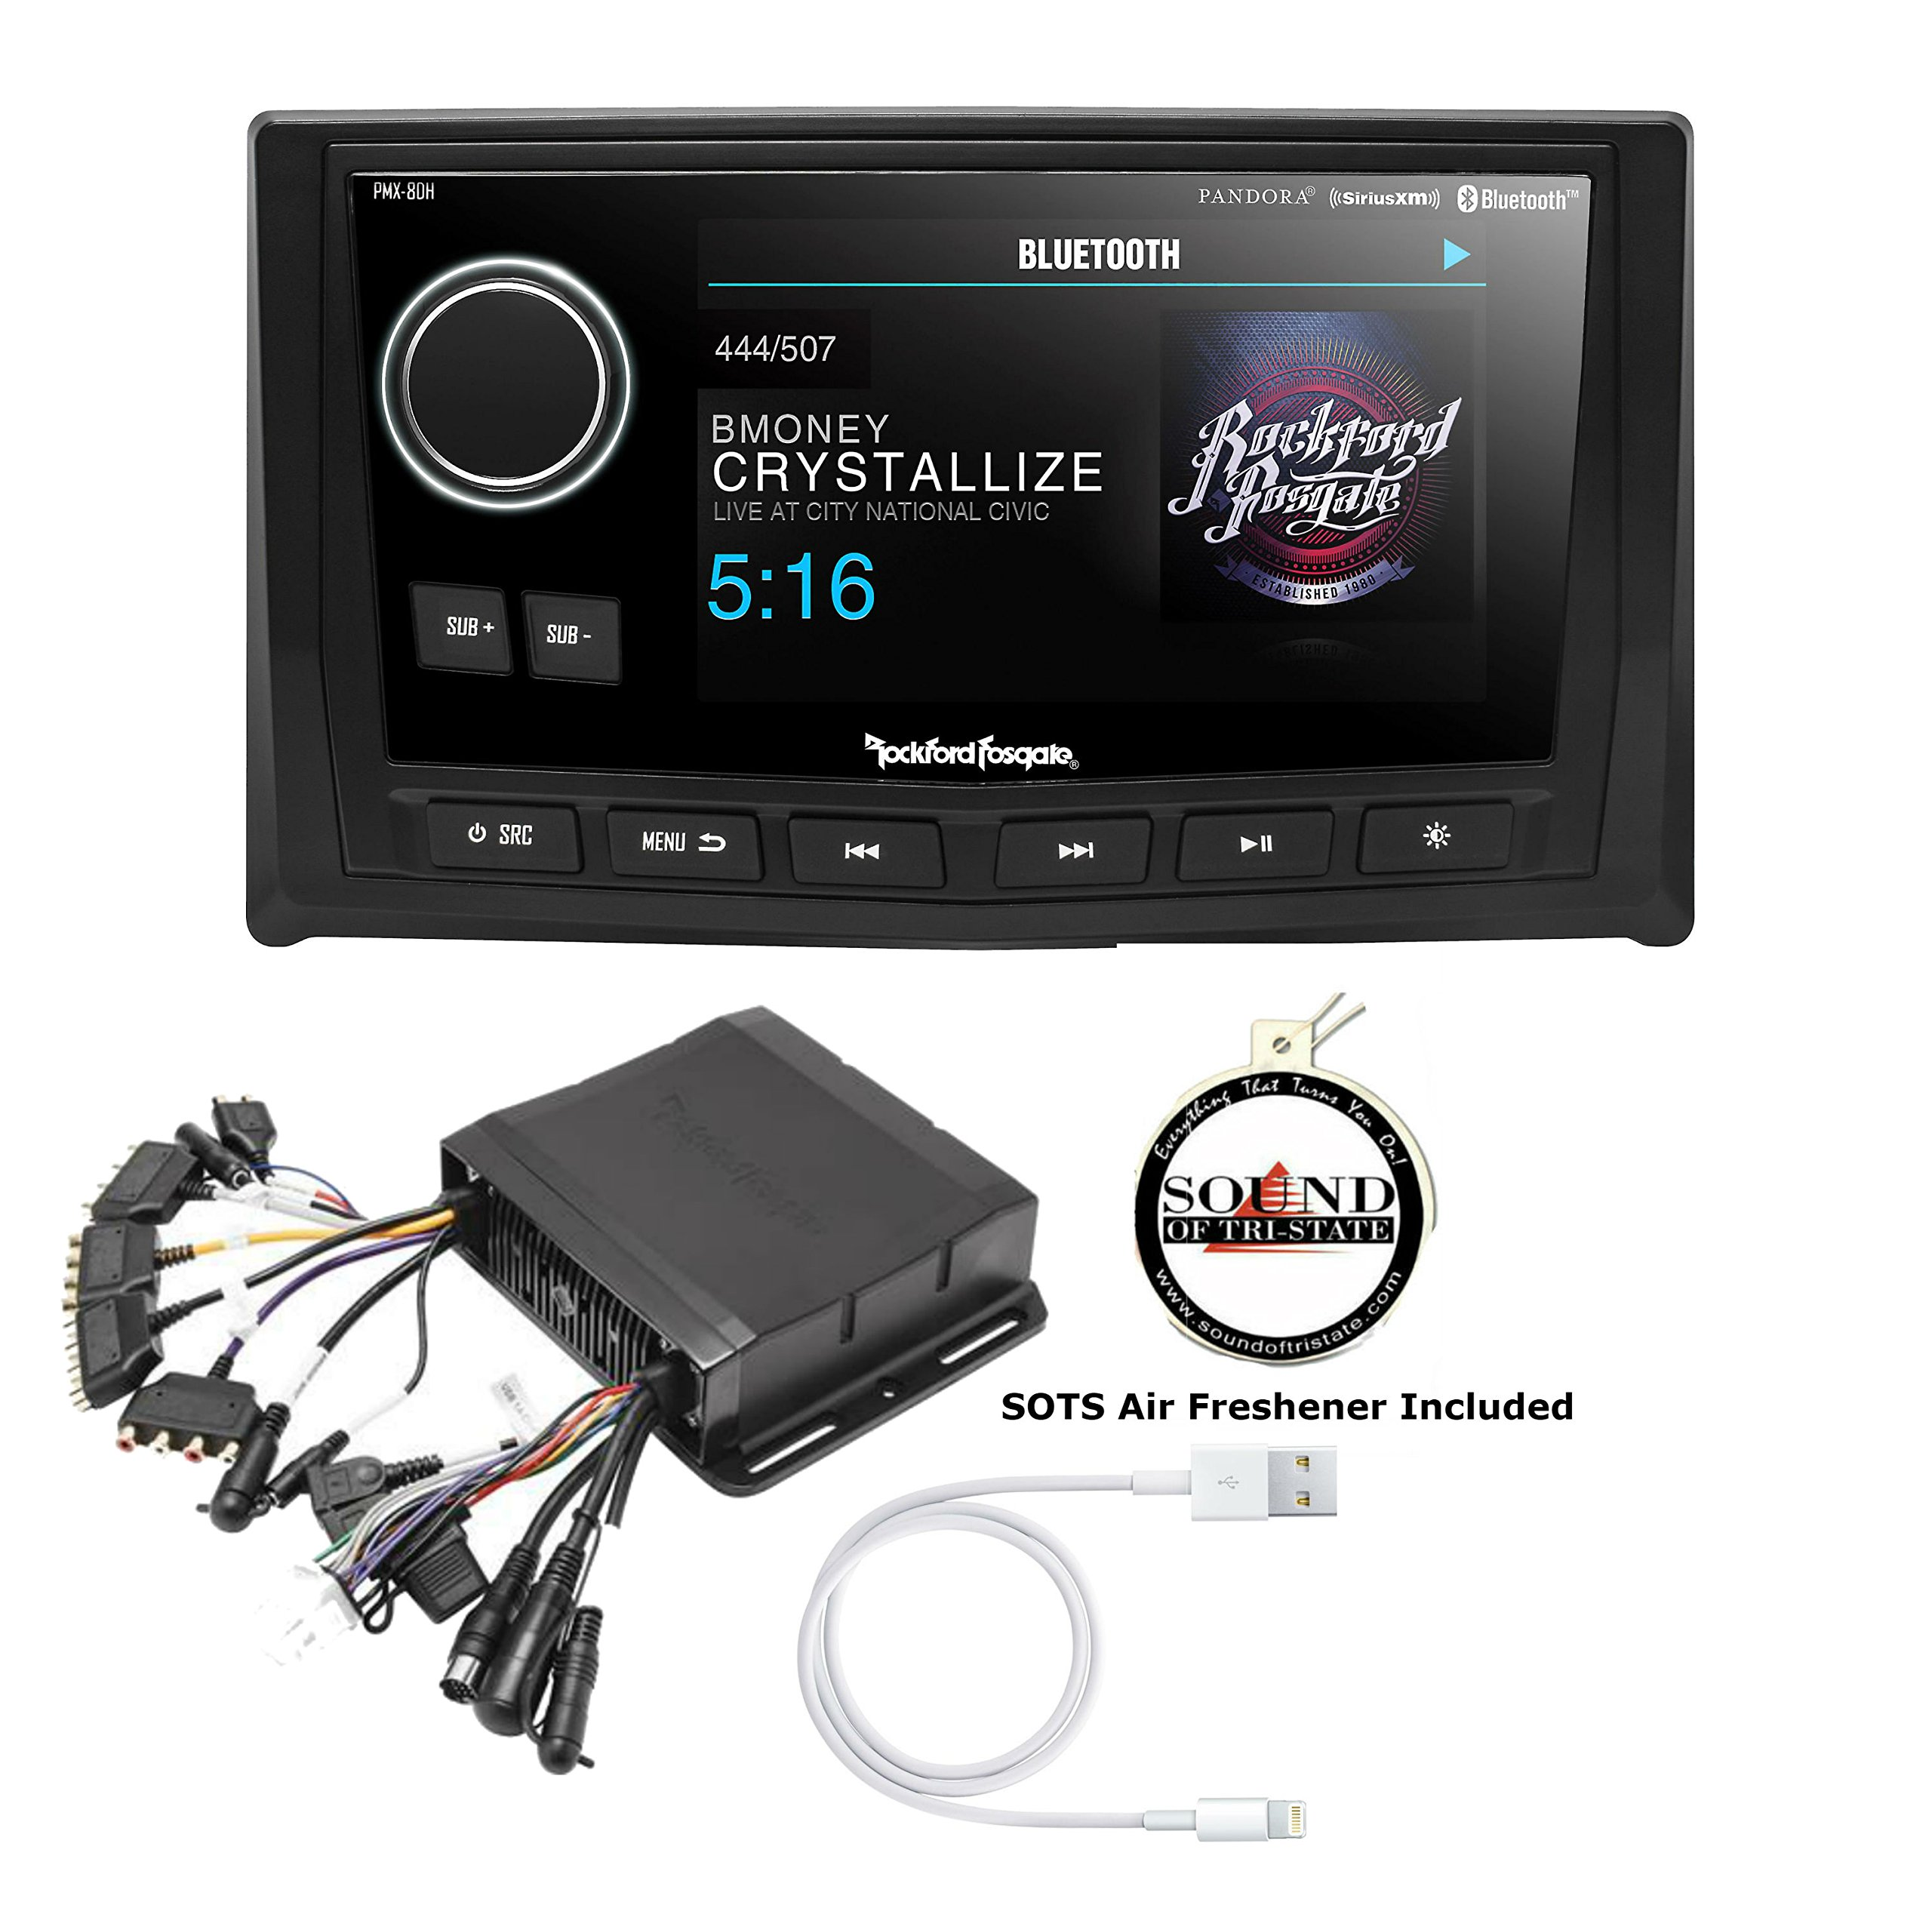 Rockford Fosgate PMX-8DH Wired Remote with Display and PMX-8BB Hideaware Digital Media Receiver with Lightening to USB Adapter and FREE SOTS Air Freshener